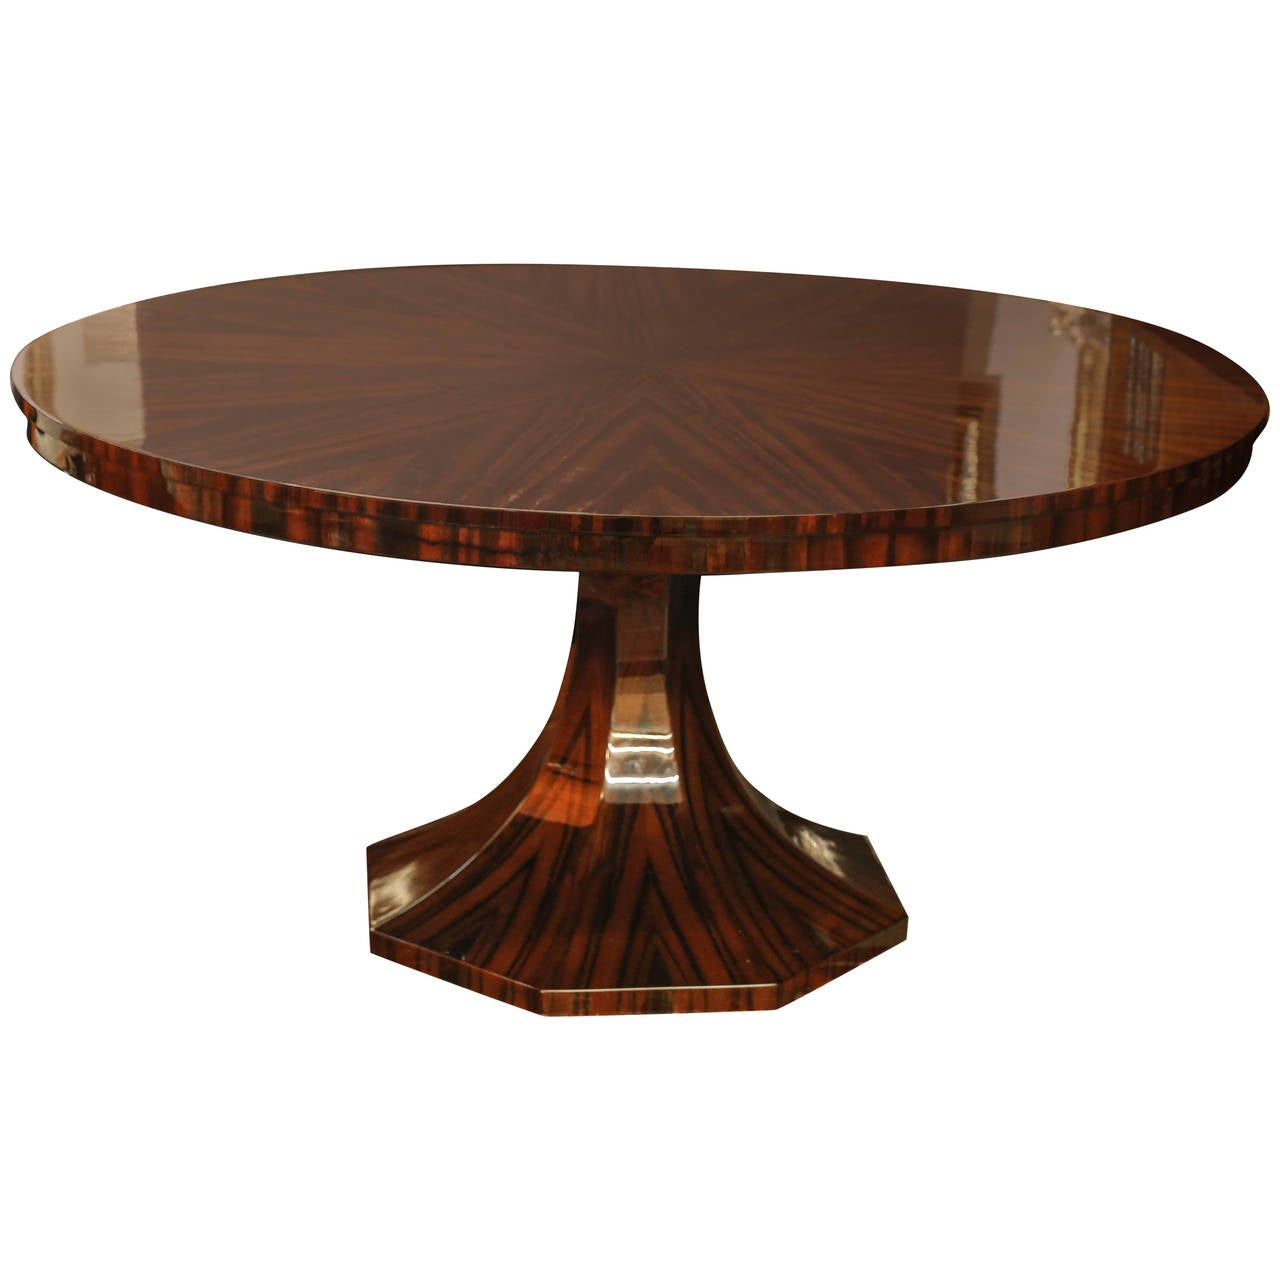 French round dining room or conference table at 1stdibs for French round dining table